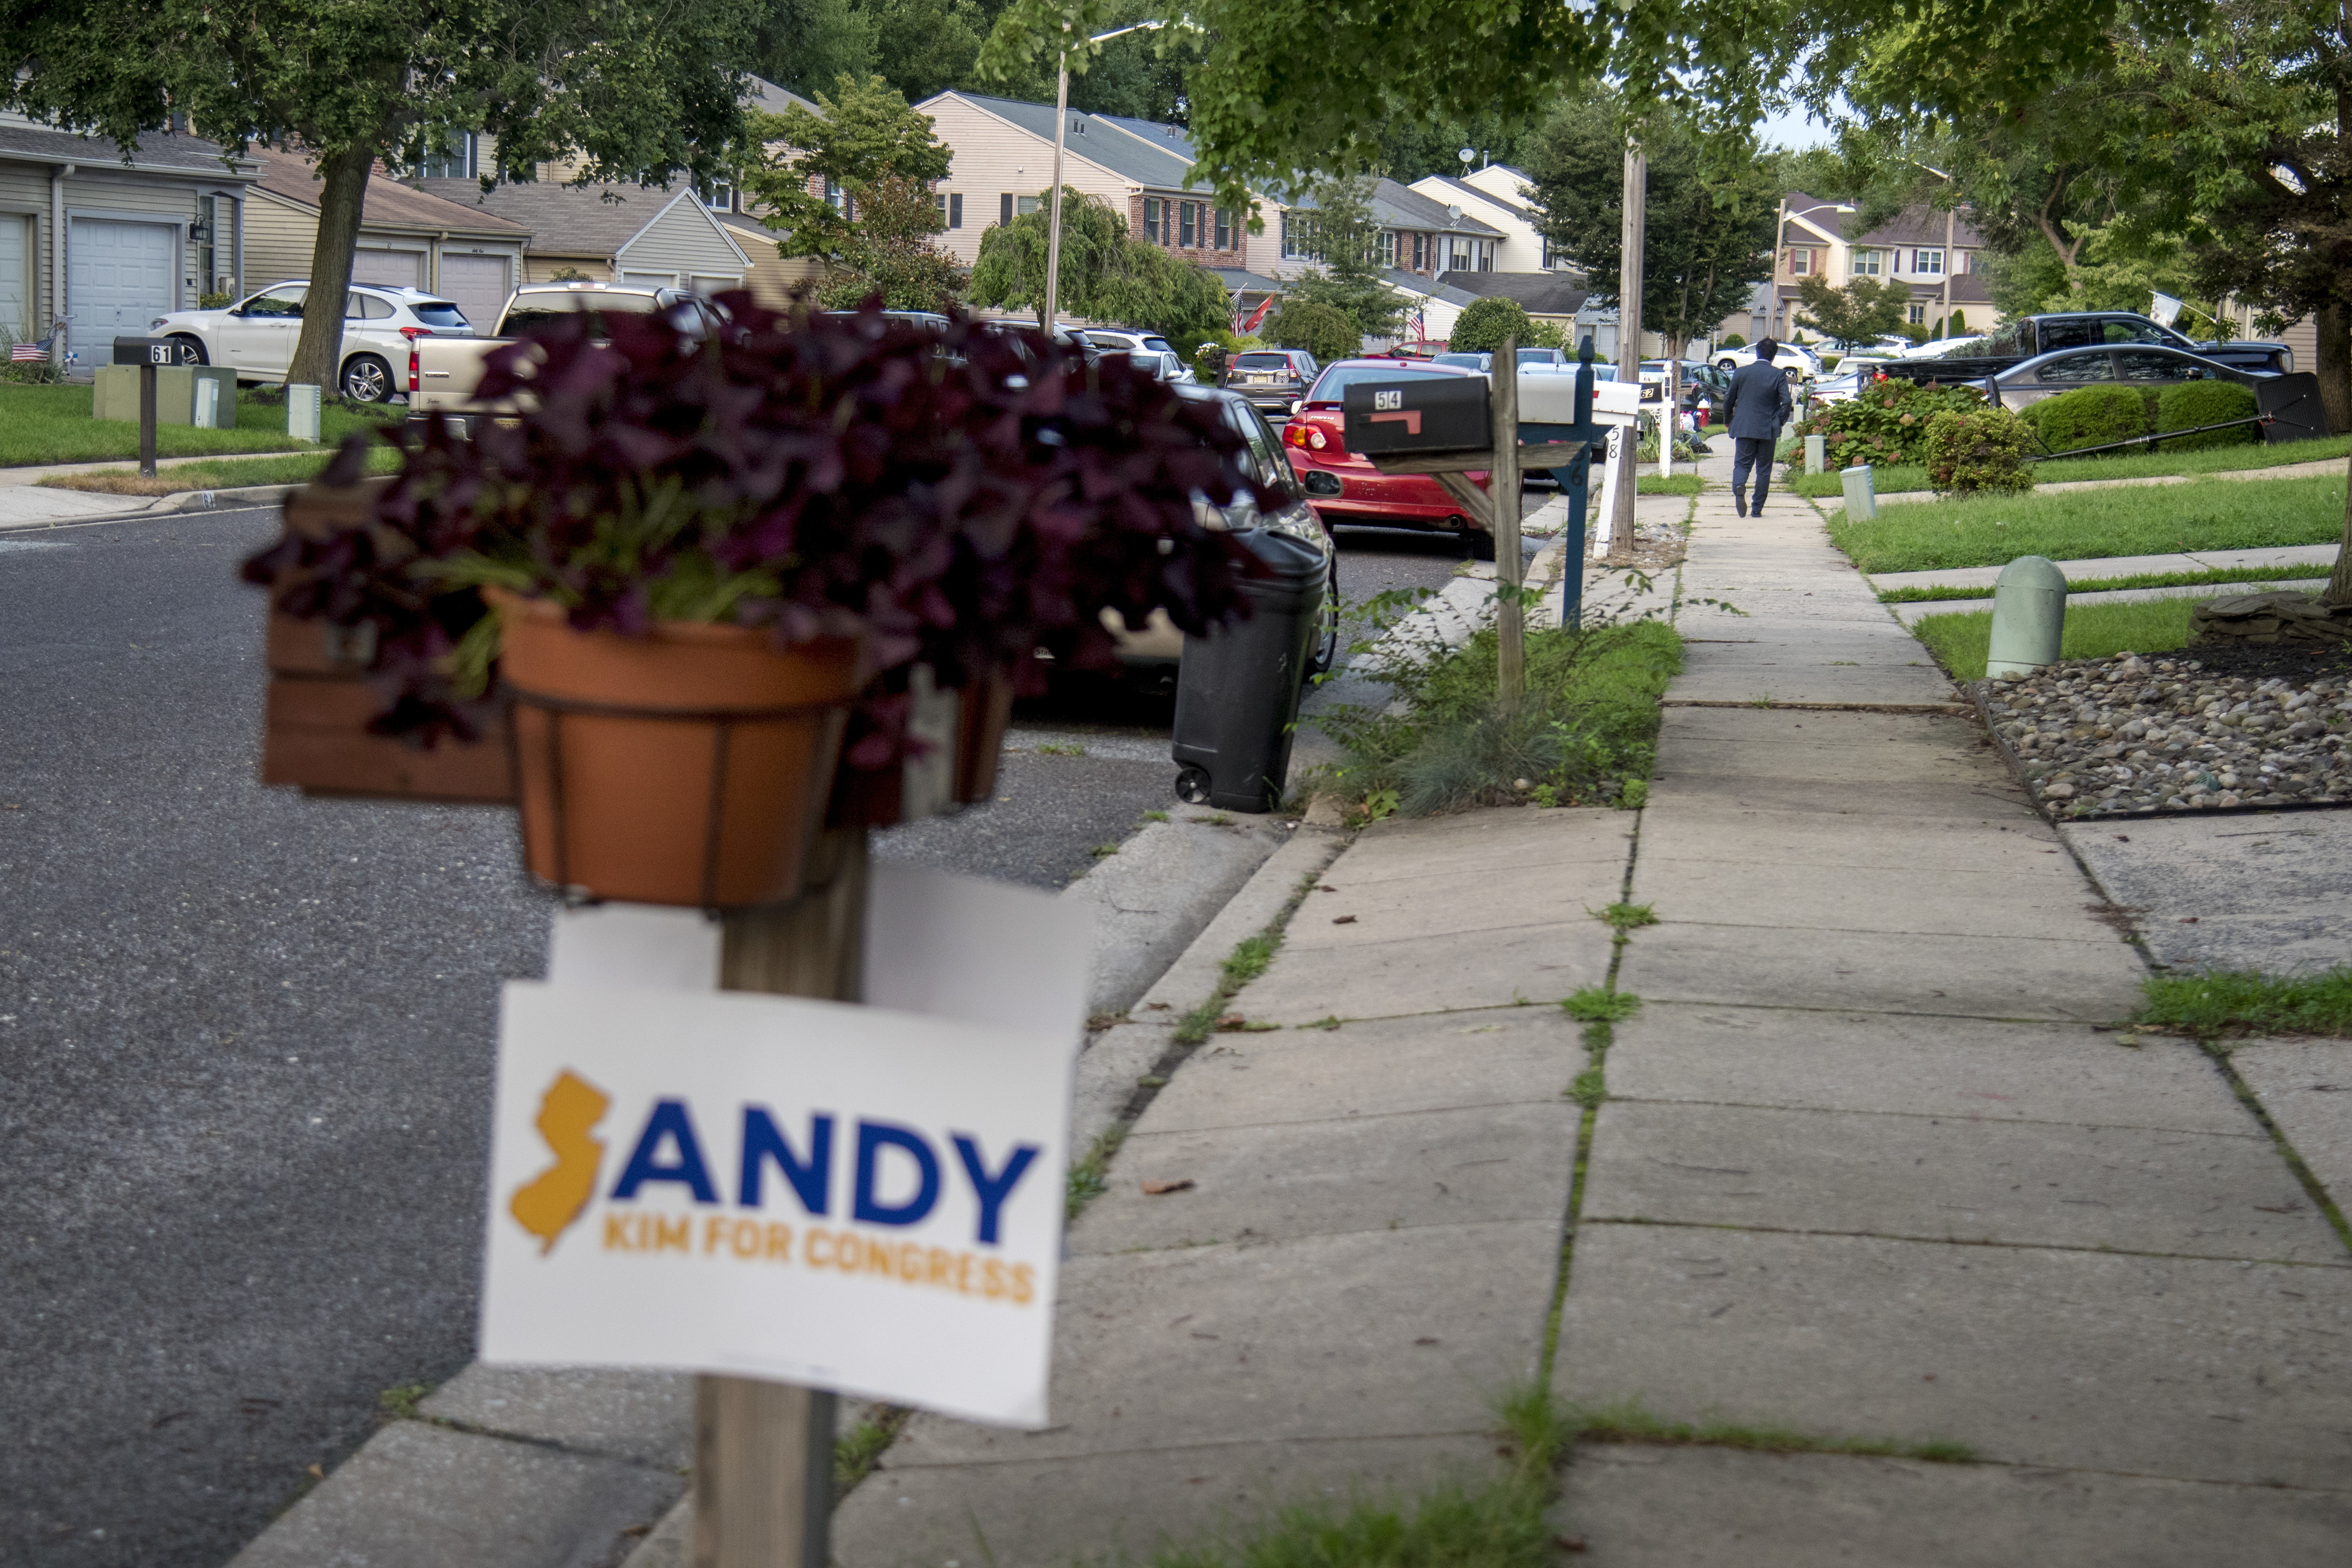 Andy Kim (rear) walks to his car - parked far down the street - after the attended a speaks a fundraiser at a supporter´s home in Mt. Laurel August 20, 2018. A Democrat, Kim is campaigning in the competitive Second Congressional District challenging Republican incumbent U.S. Rep. Tom MacArthur.